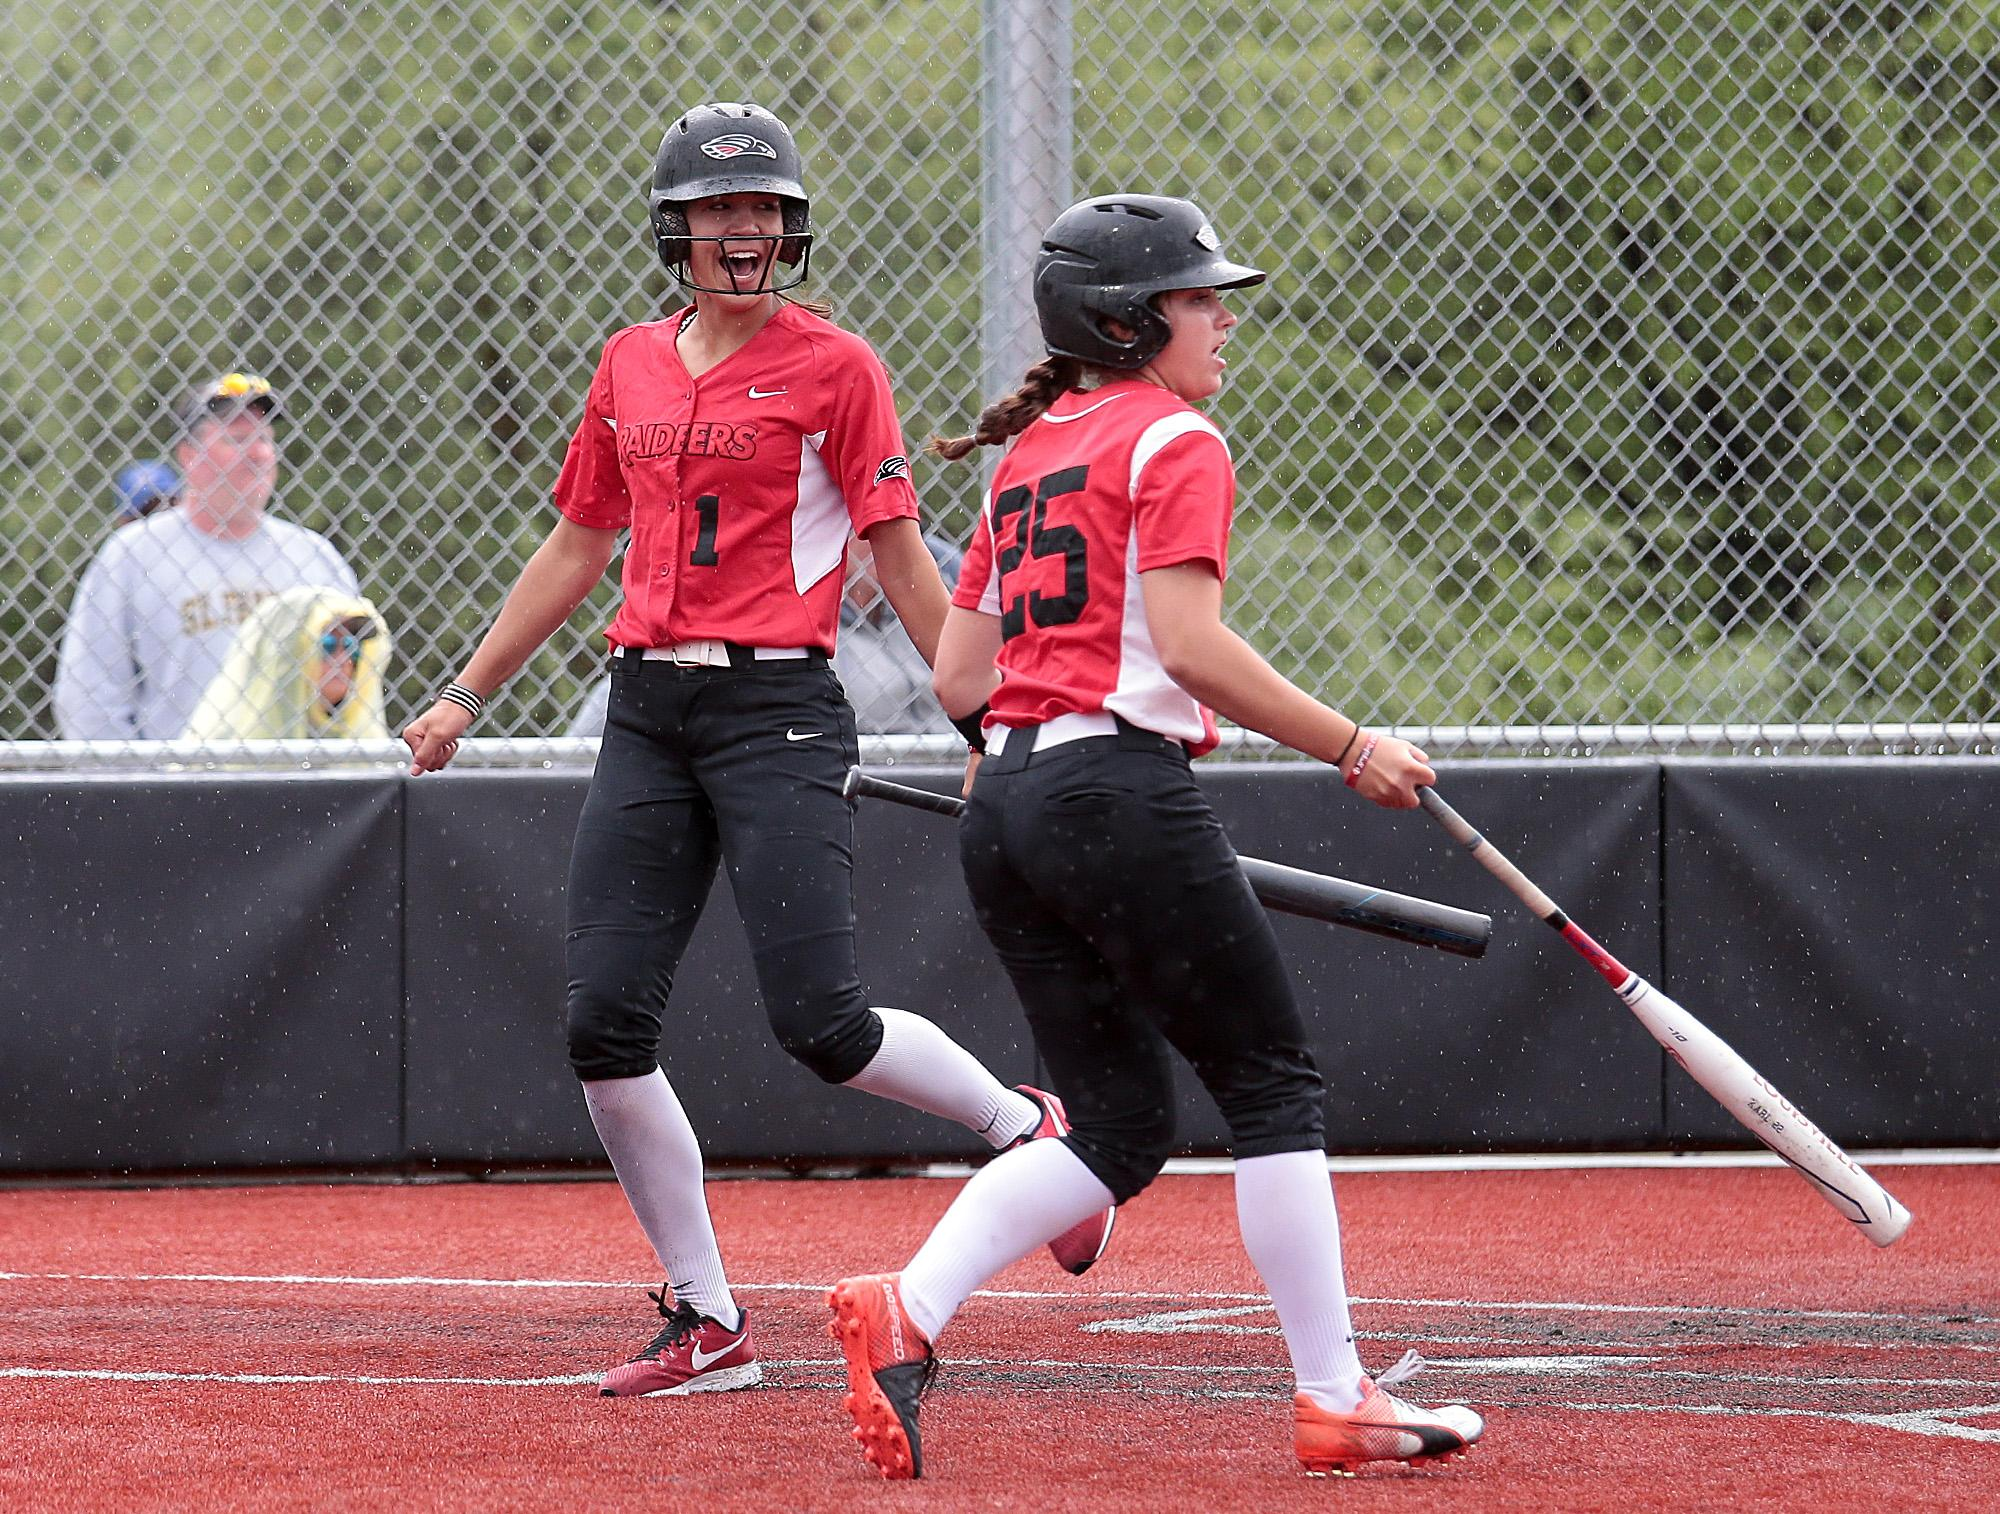 Larry Stauth Jr./For the Daily TidingsSouthern Oregon University freshman first baseman Tayler Walker, left, reacts after scoring against St. Francis at U.S. Cellular Community Park on Wednesday.